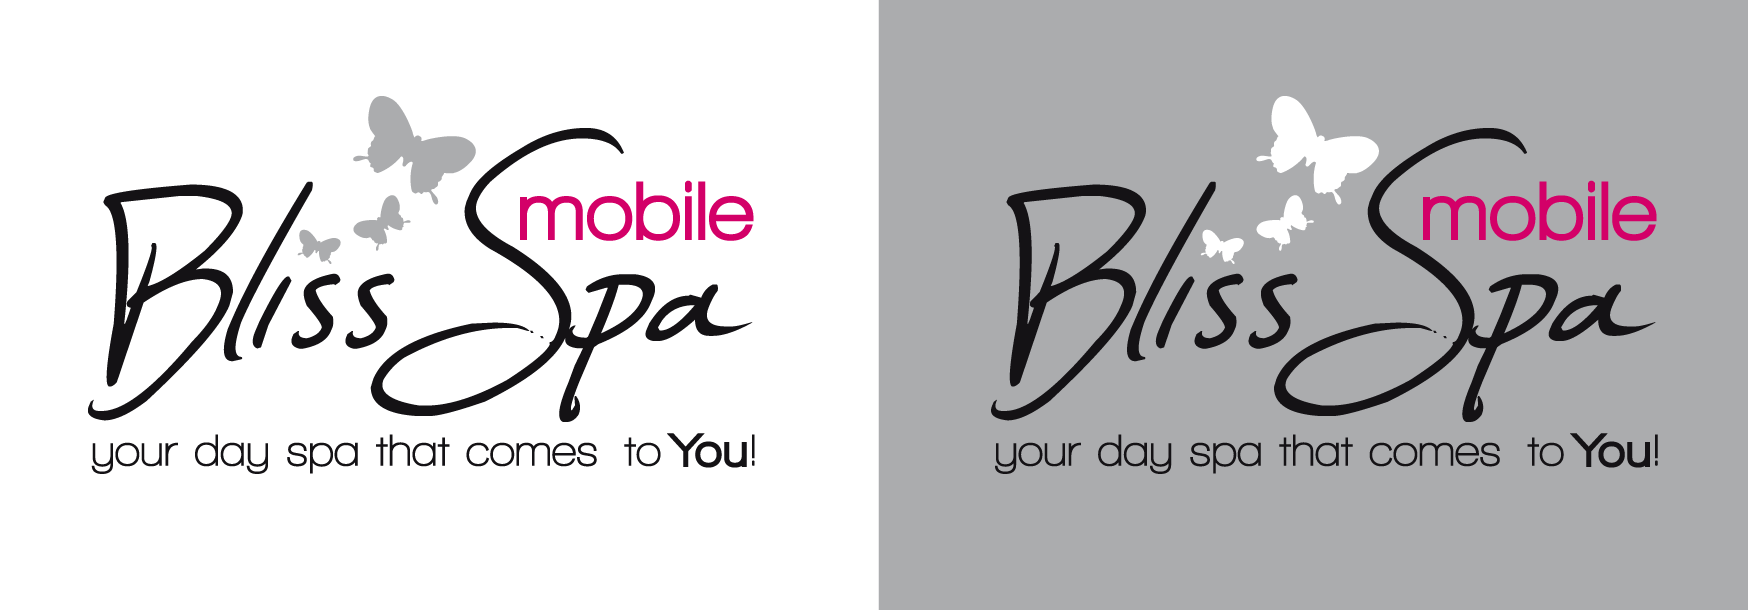 Logo Design by luna - Entry No. 52 in the Logo Design Contest New Logo Design for Bliss Spa Mobile.